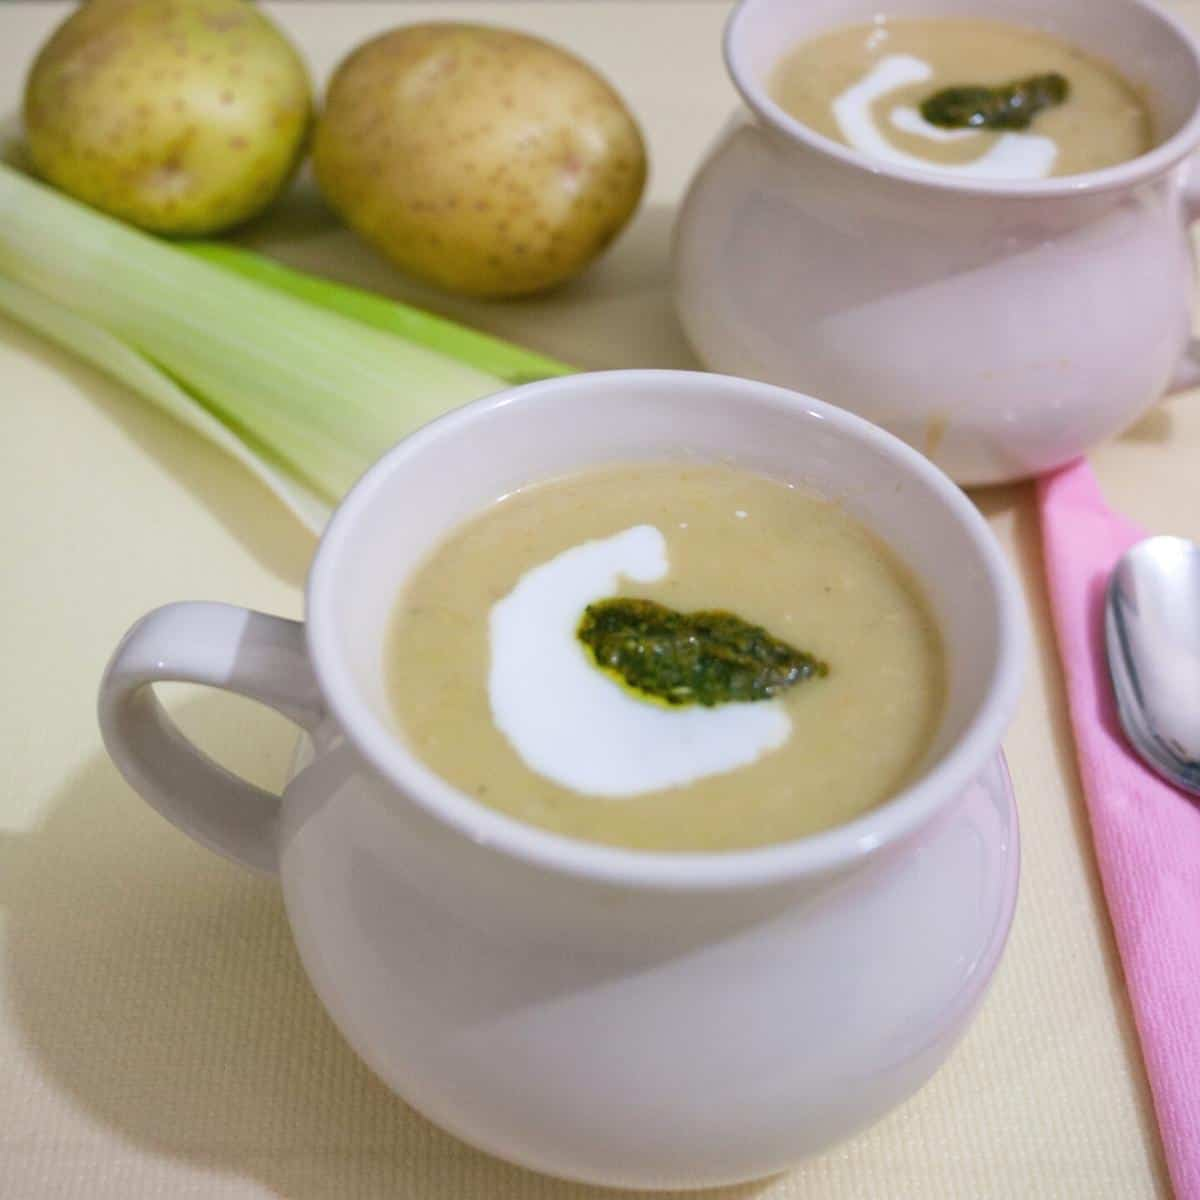 A cup of leek and potato soup.